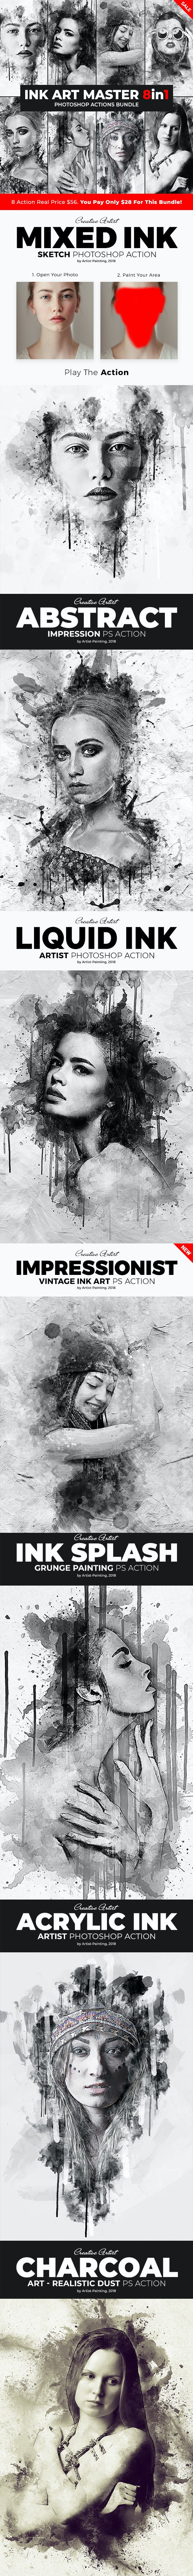 Ink Art Master - 8in1 Photoshop Actions Bundle - Photo Effects Actions